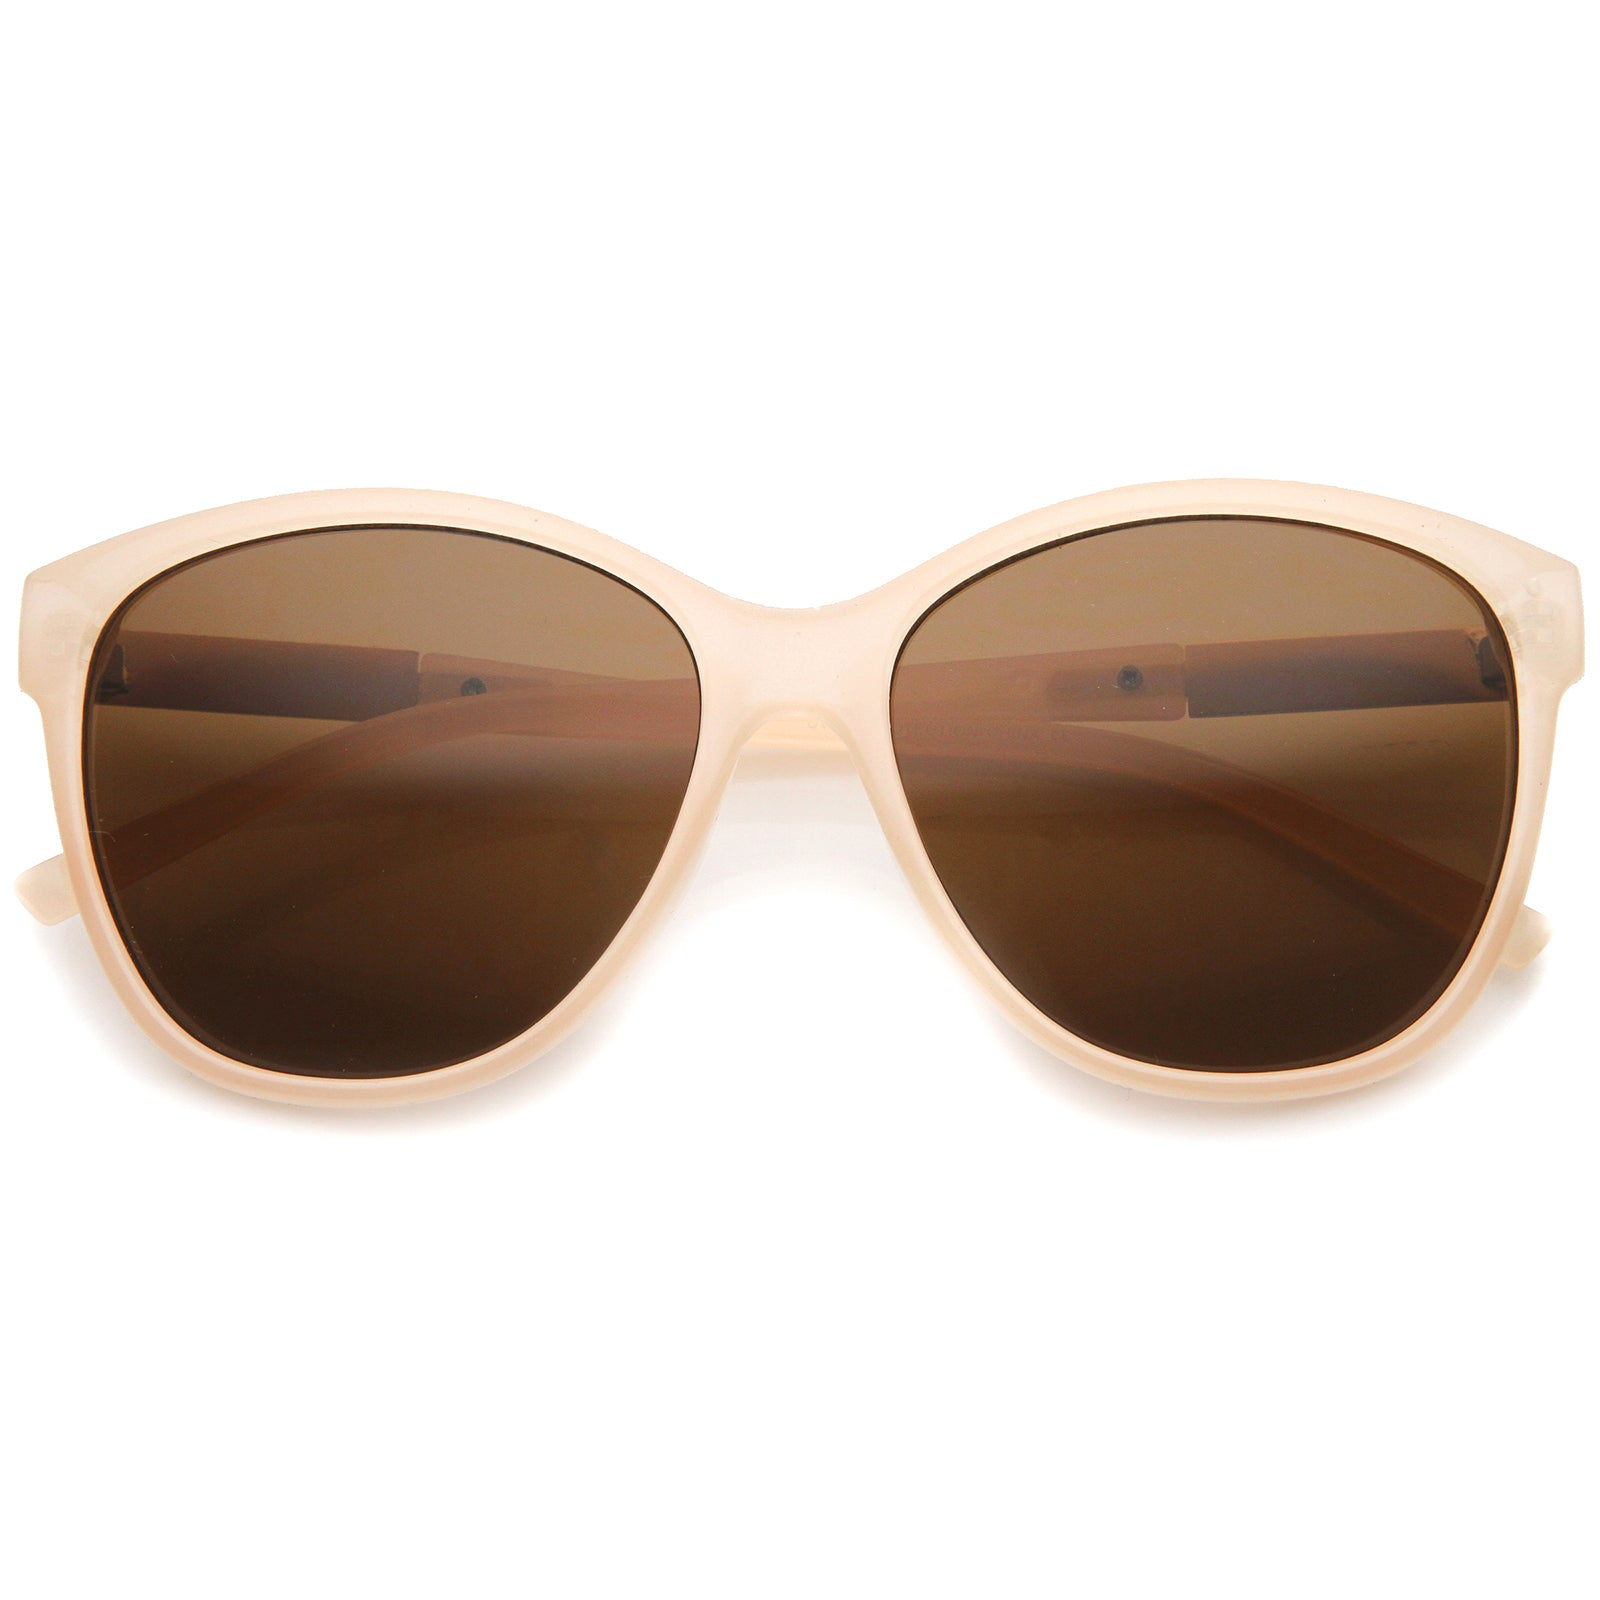 Women's Glam Fashion Metal Temple Oversize Cat Eye Sunglasses 59mm - sunglass.la - 13